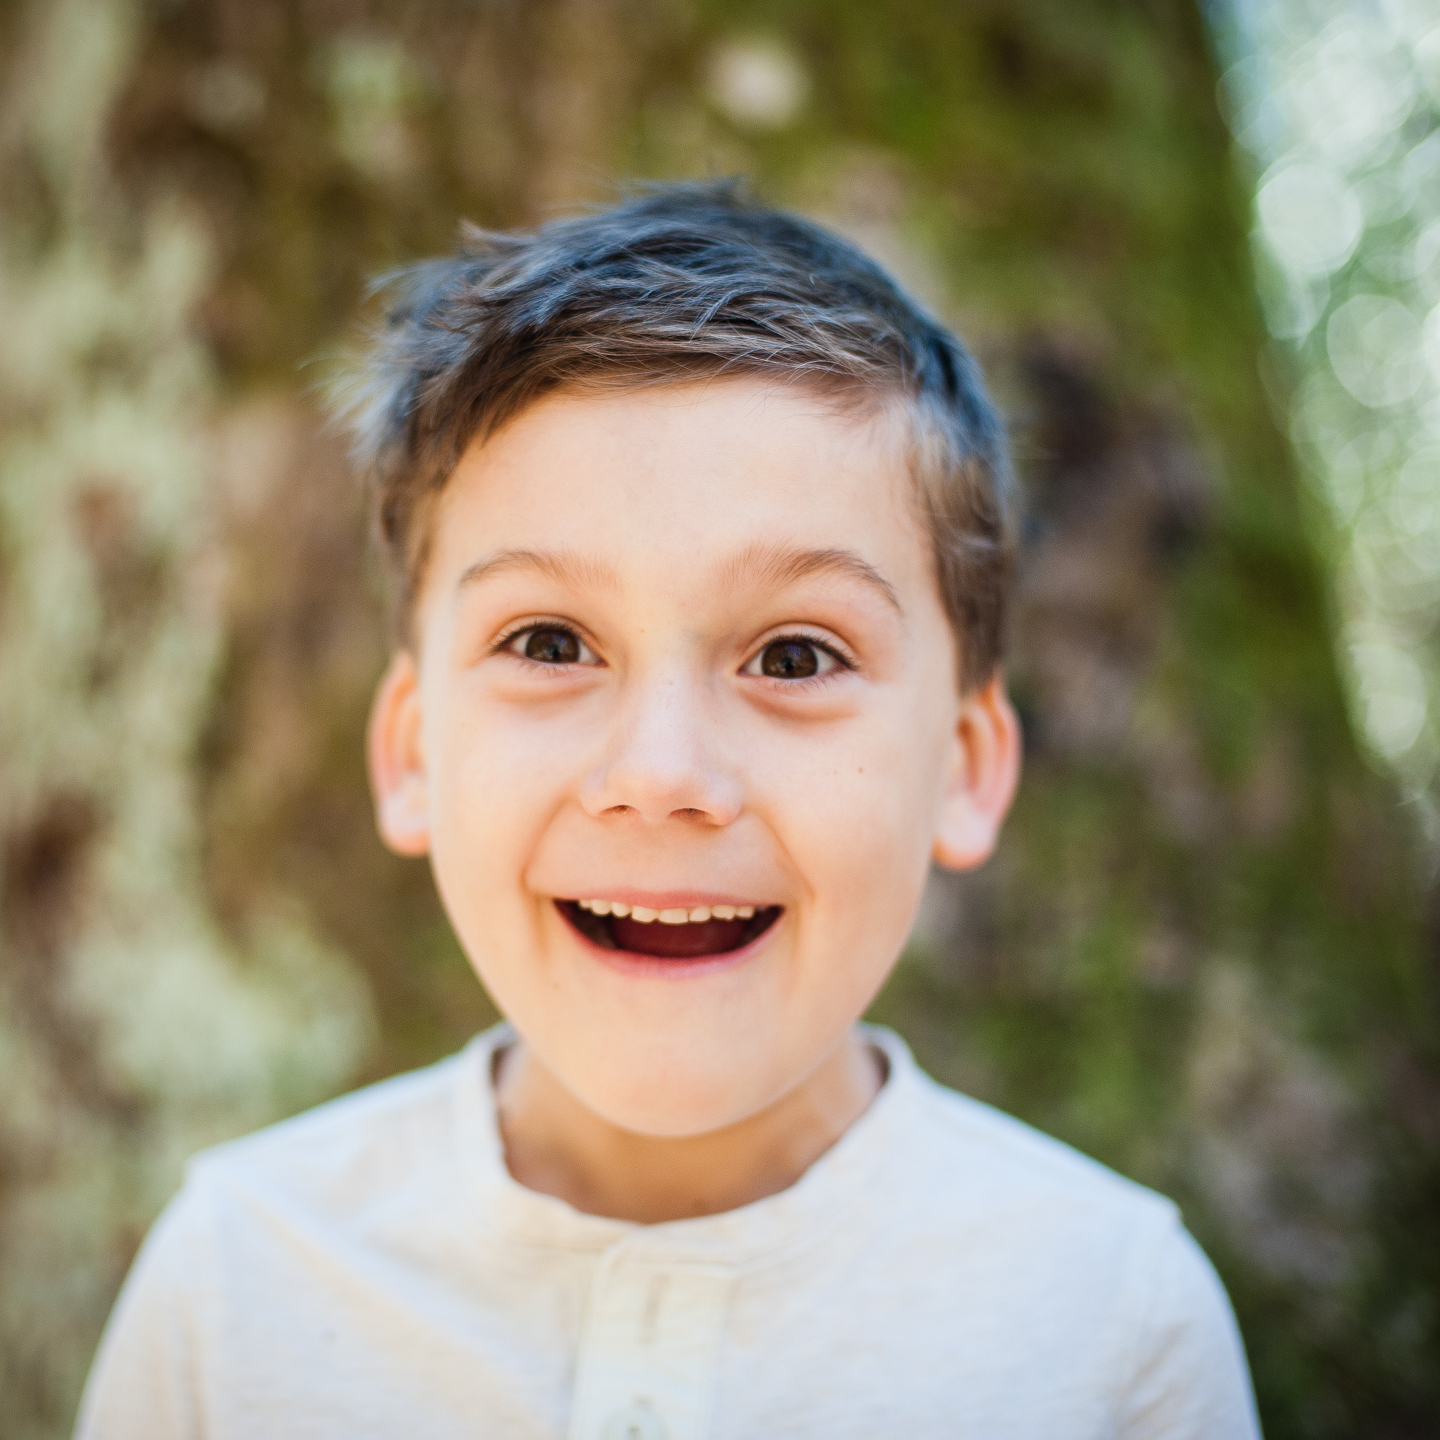 adorable boy goofs off during his outdoor photo session